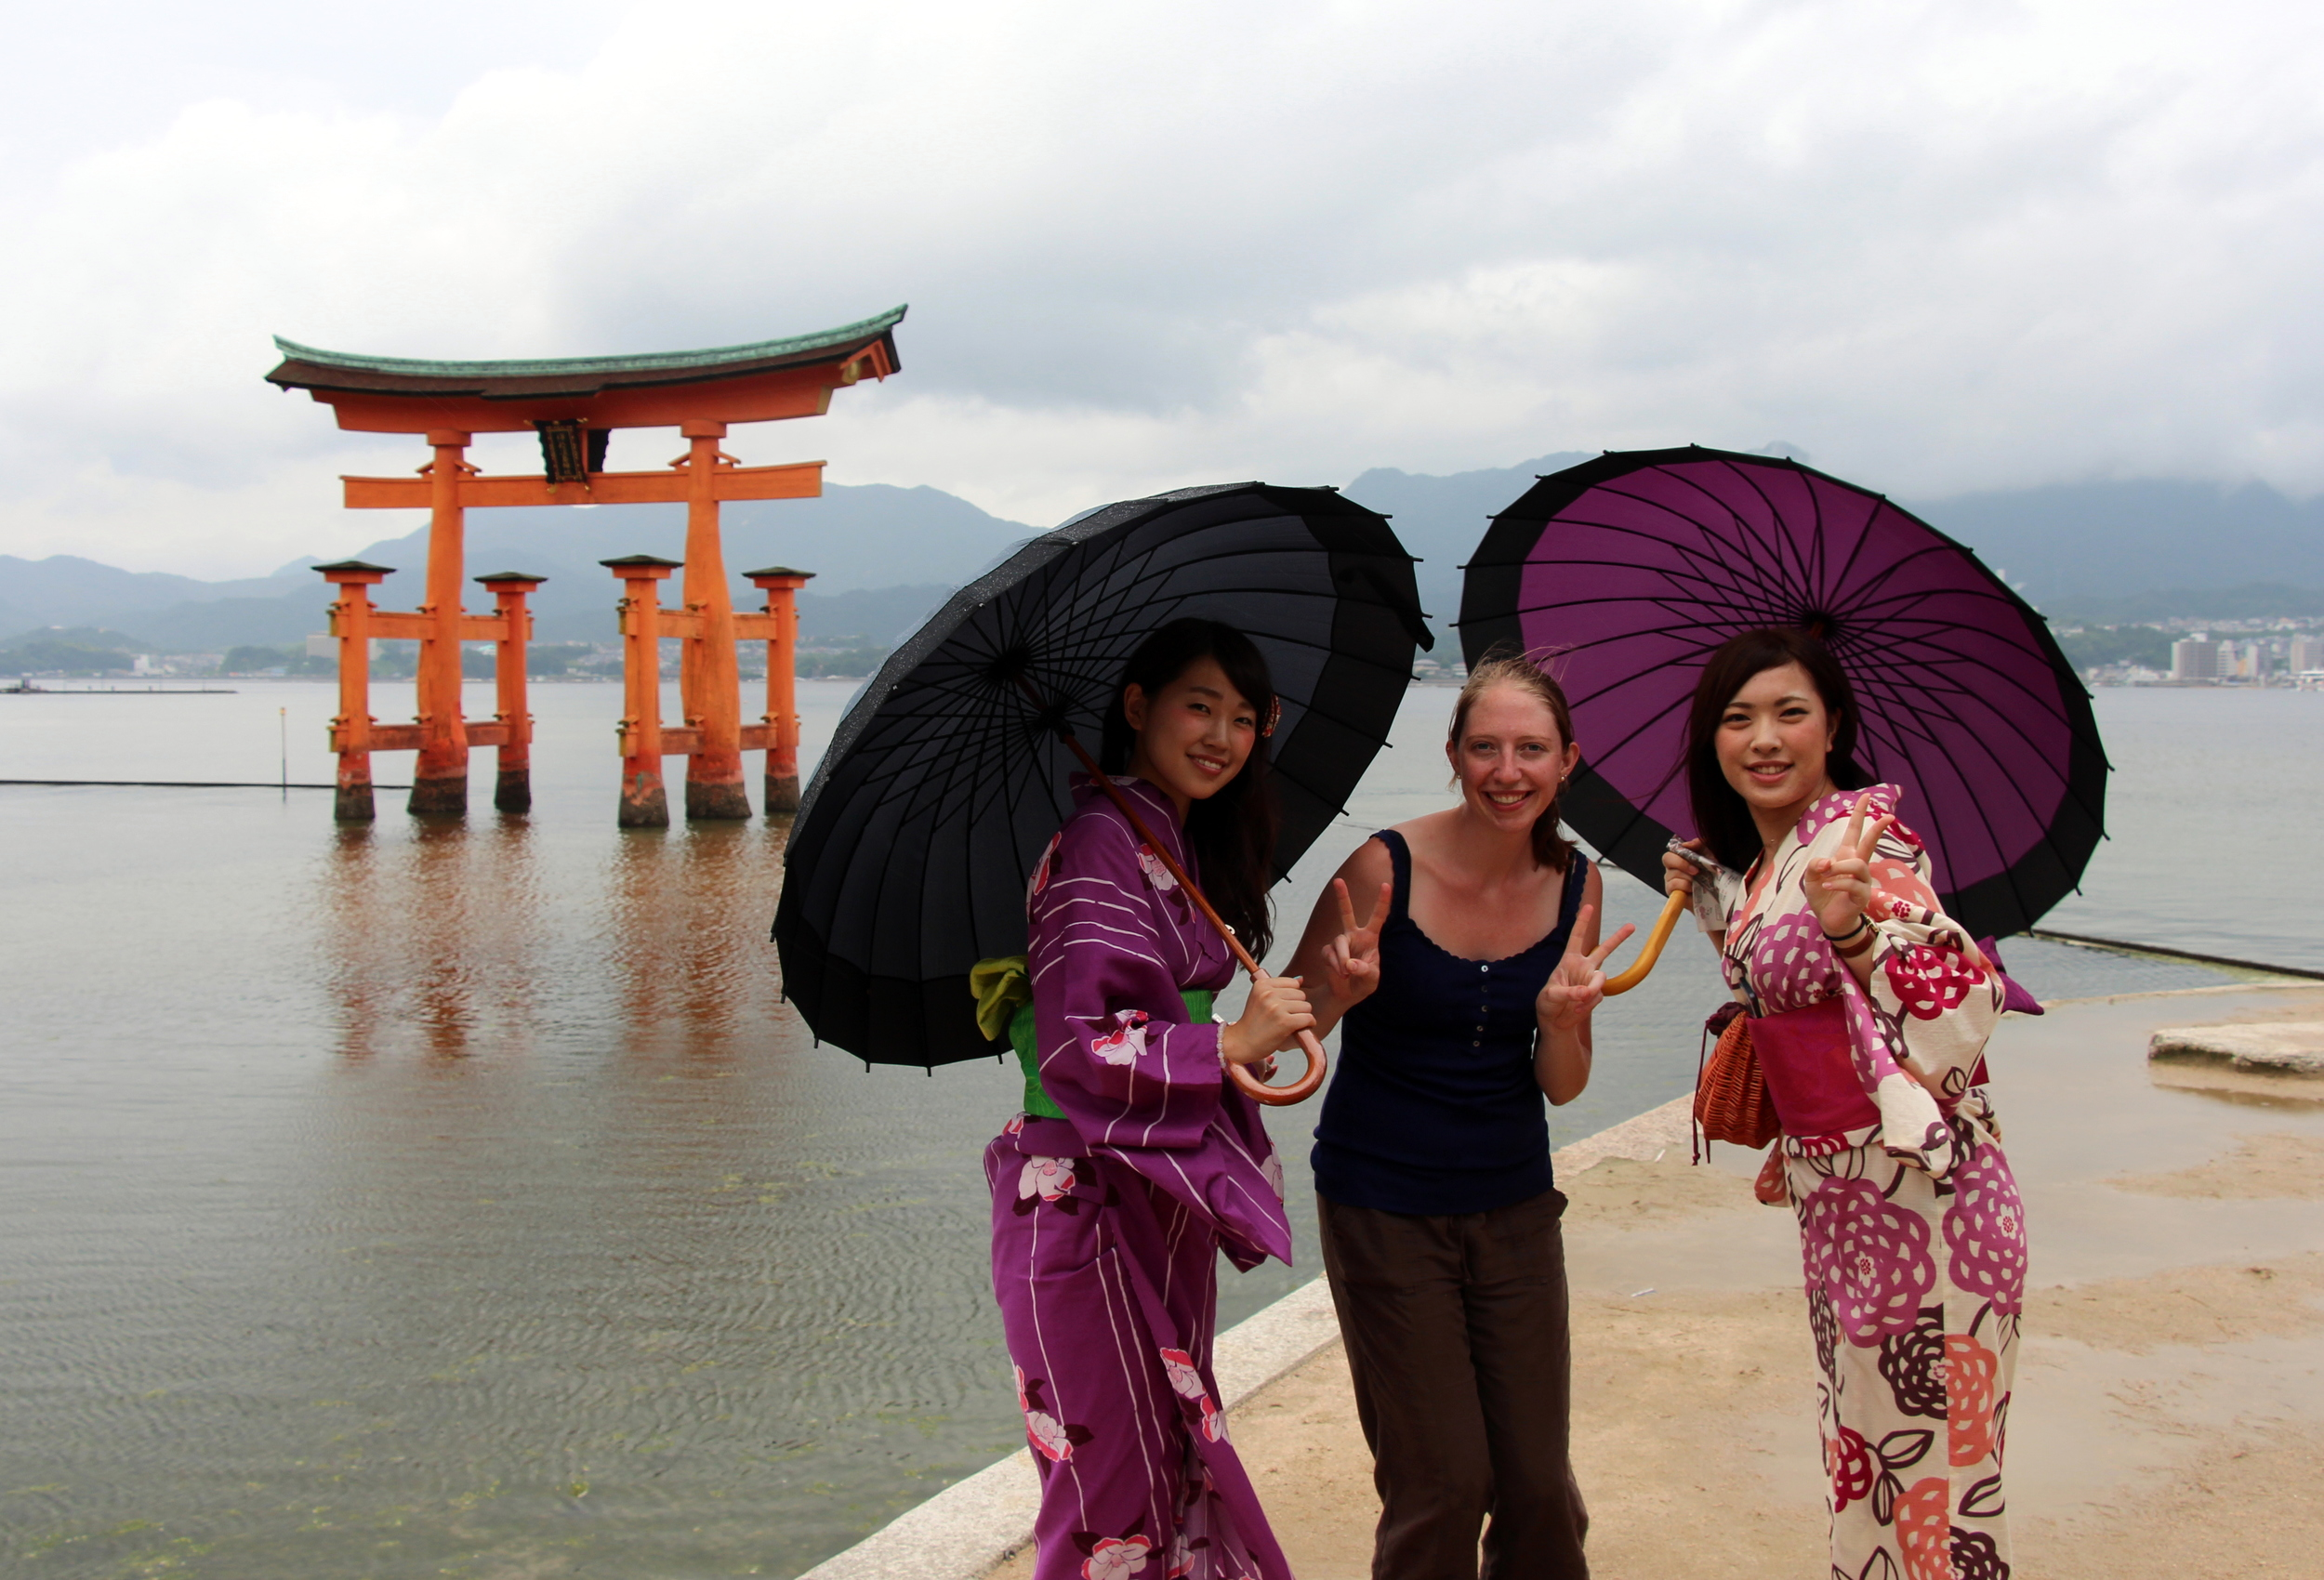 Kelsi and some other sightseers in front of the famous torii gate of the Itsukushima shrine on Miyajima. This small island near Hiroshima is a UNESCO World Heritage site and is most recognized by its torii gate over the water.